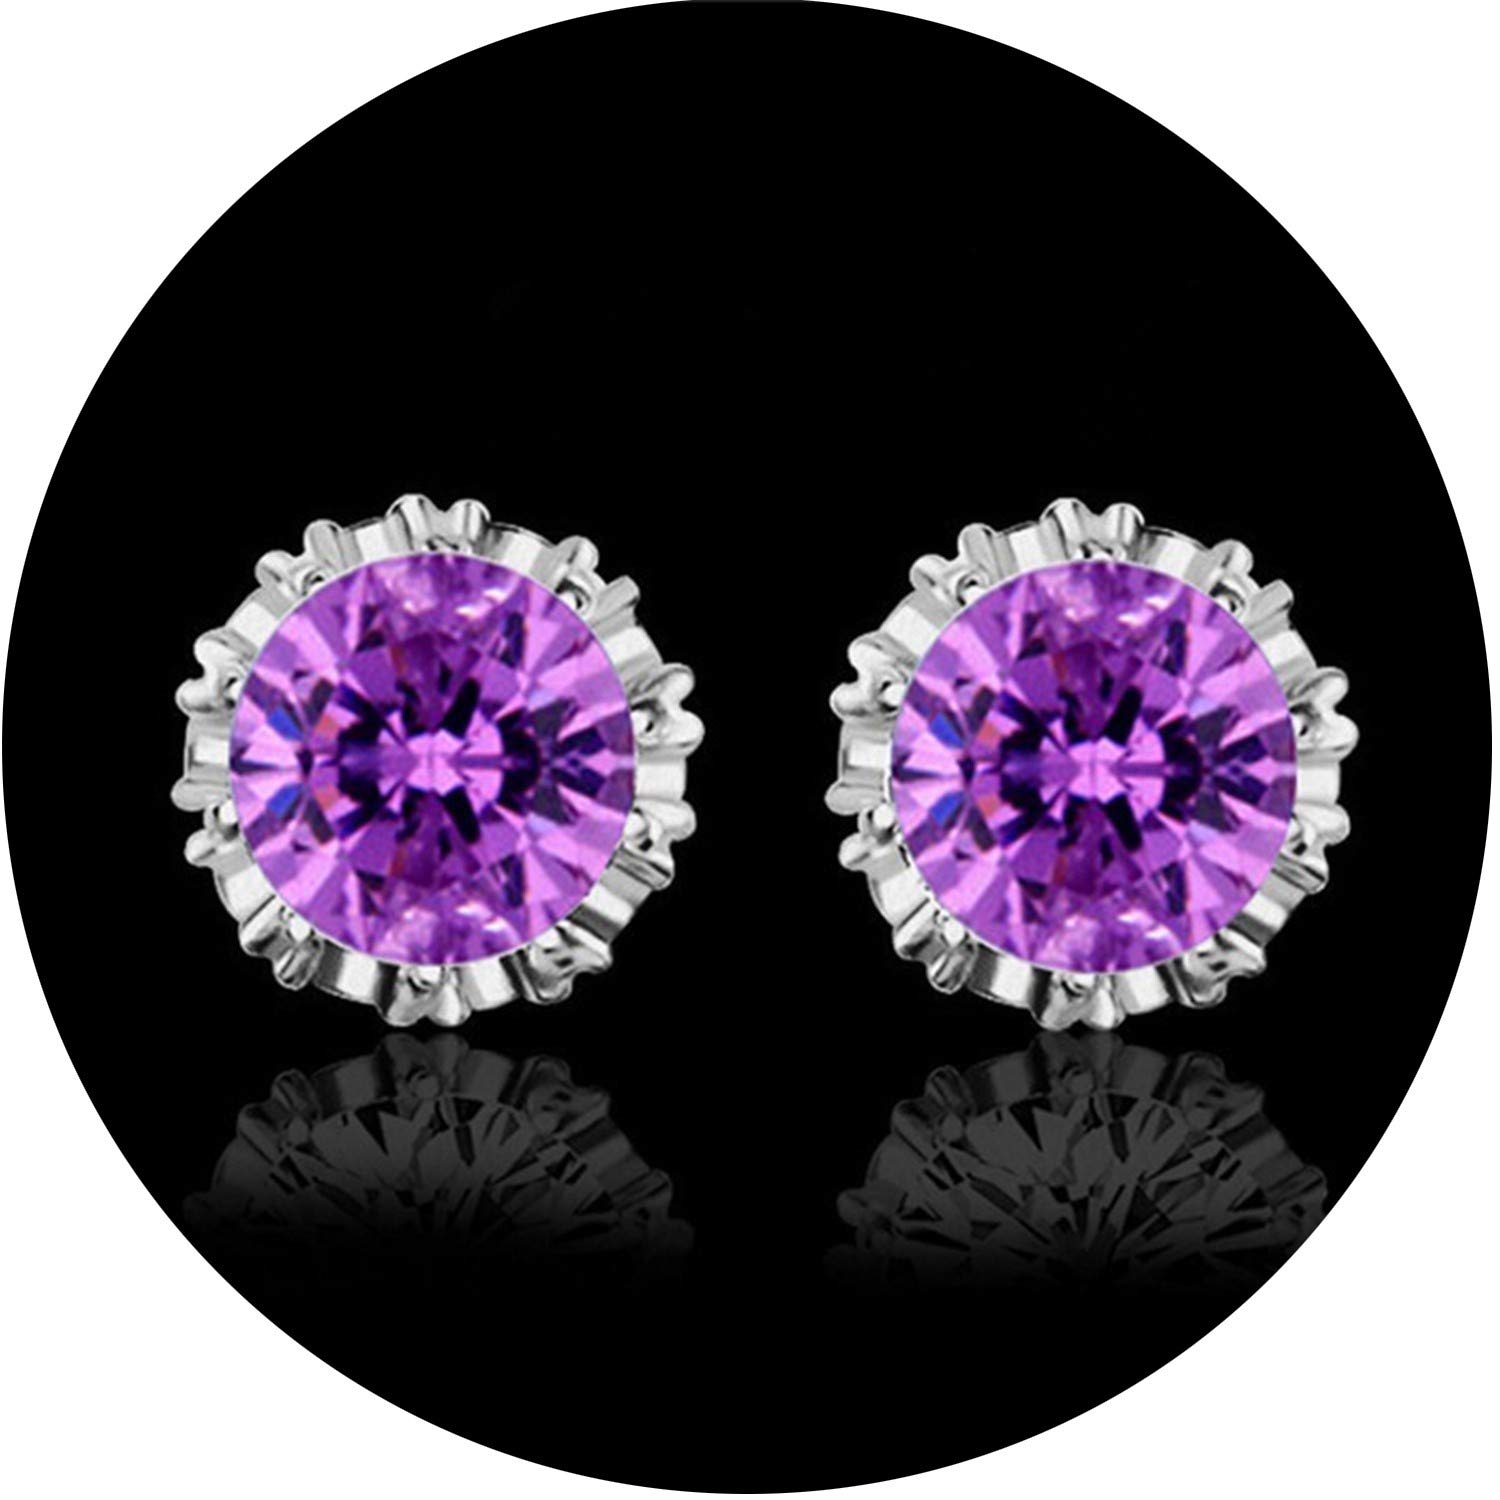 925 Sterling Silver Fashion Jewelry 8MM Round 2 Carat Cubic Zirconia Silver Stud Earrings for Women